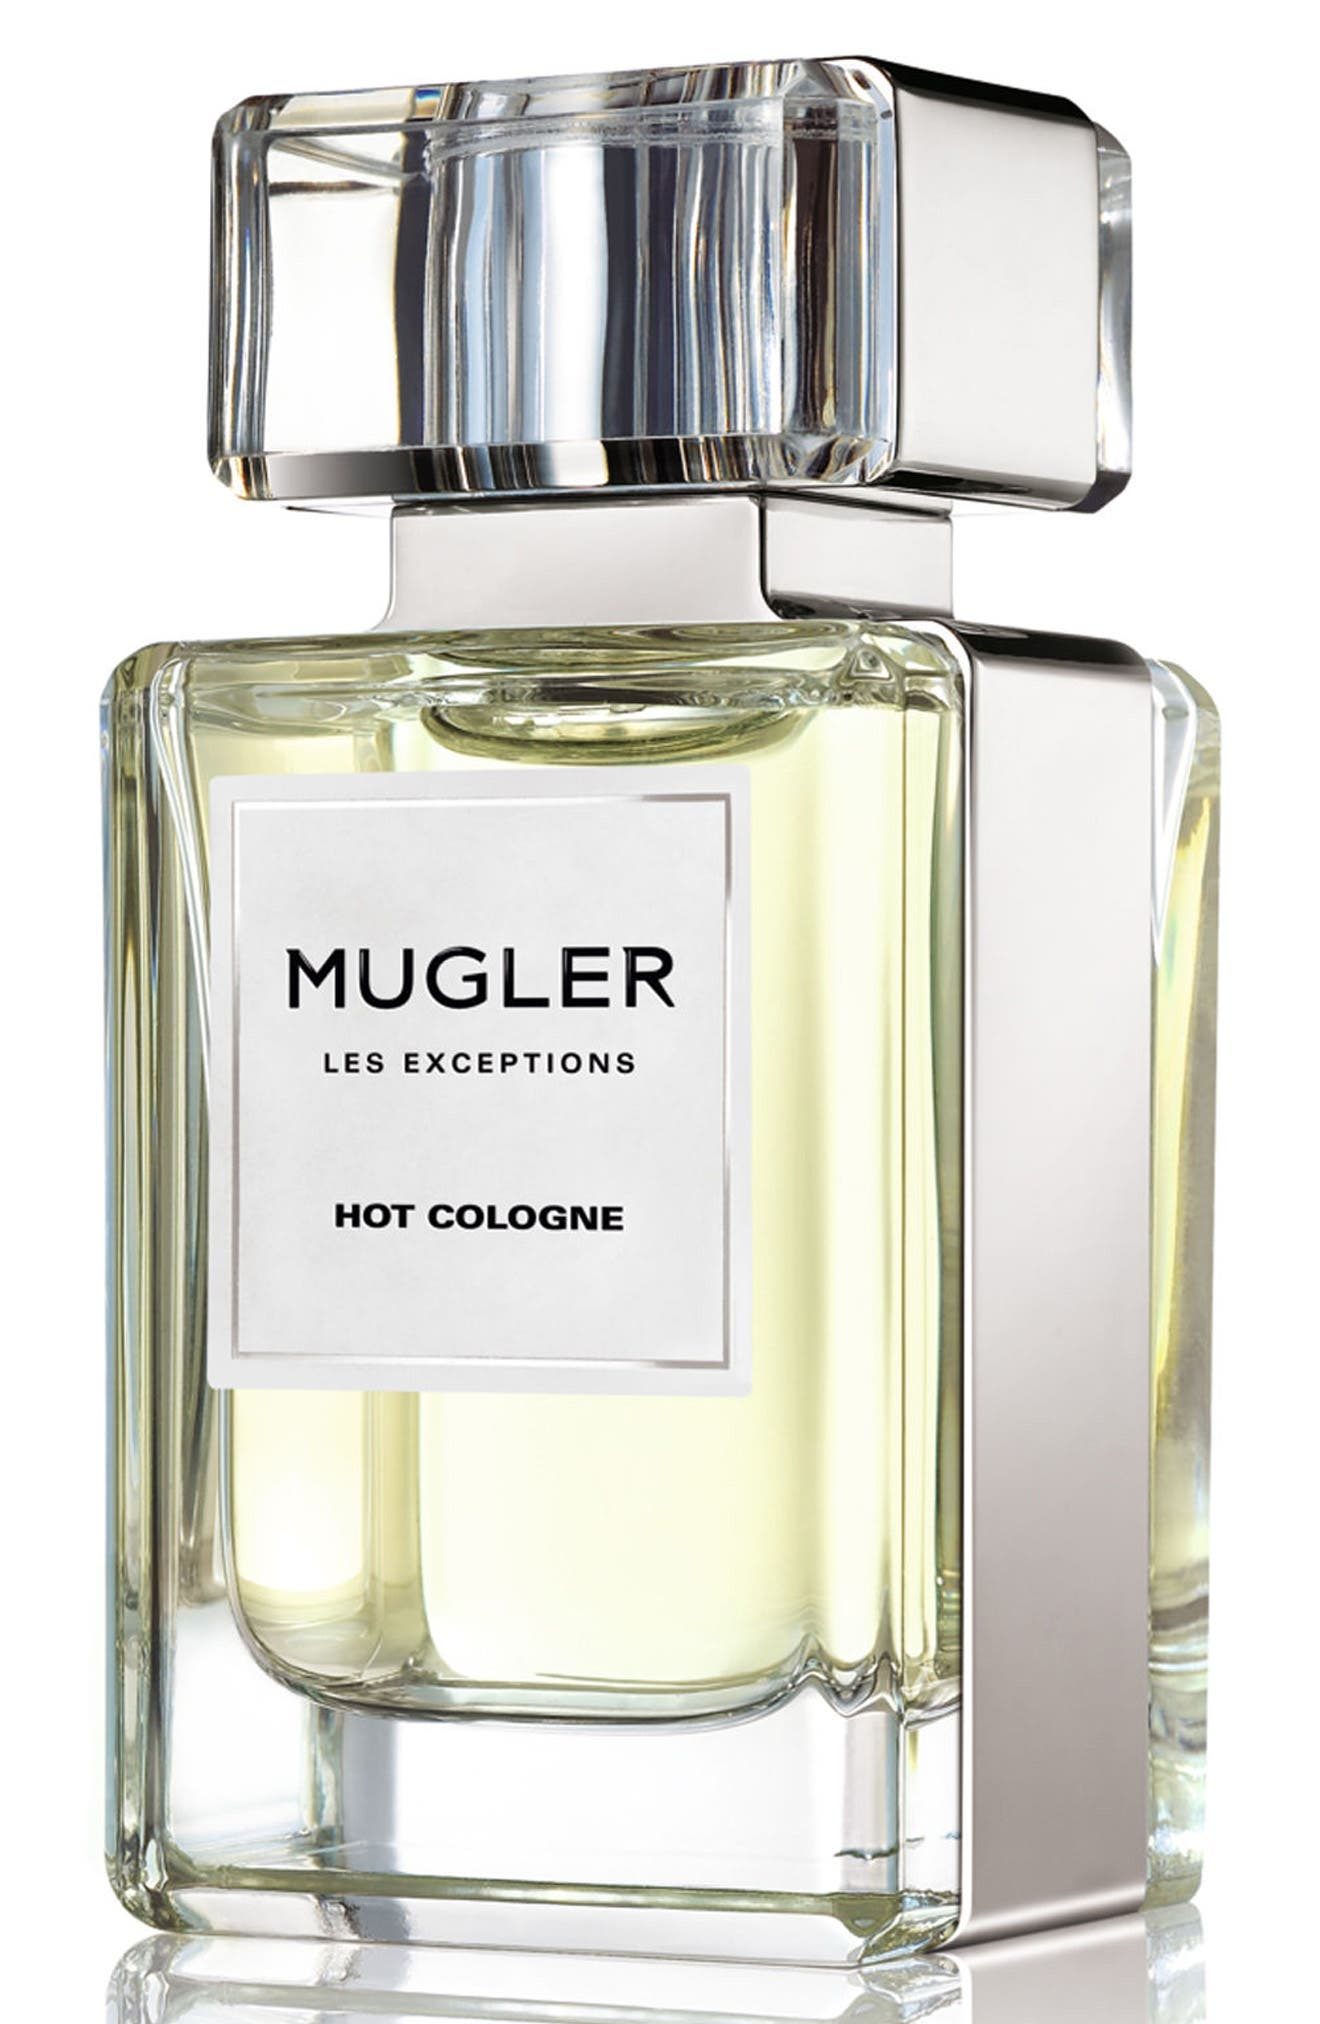 Alternate Image 1 Selected - Les Exceptions by Mugler Hot Cologne Eau de Parfum Refillable Spray